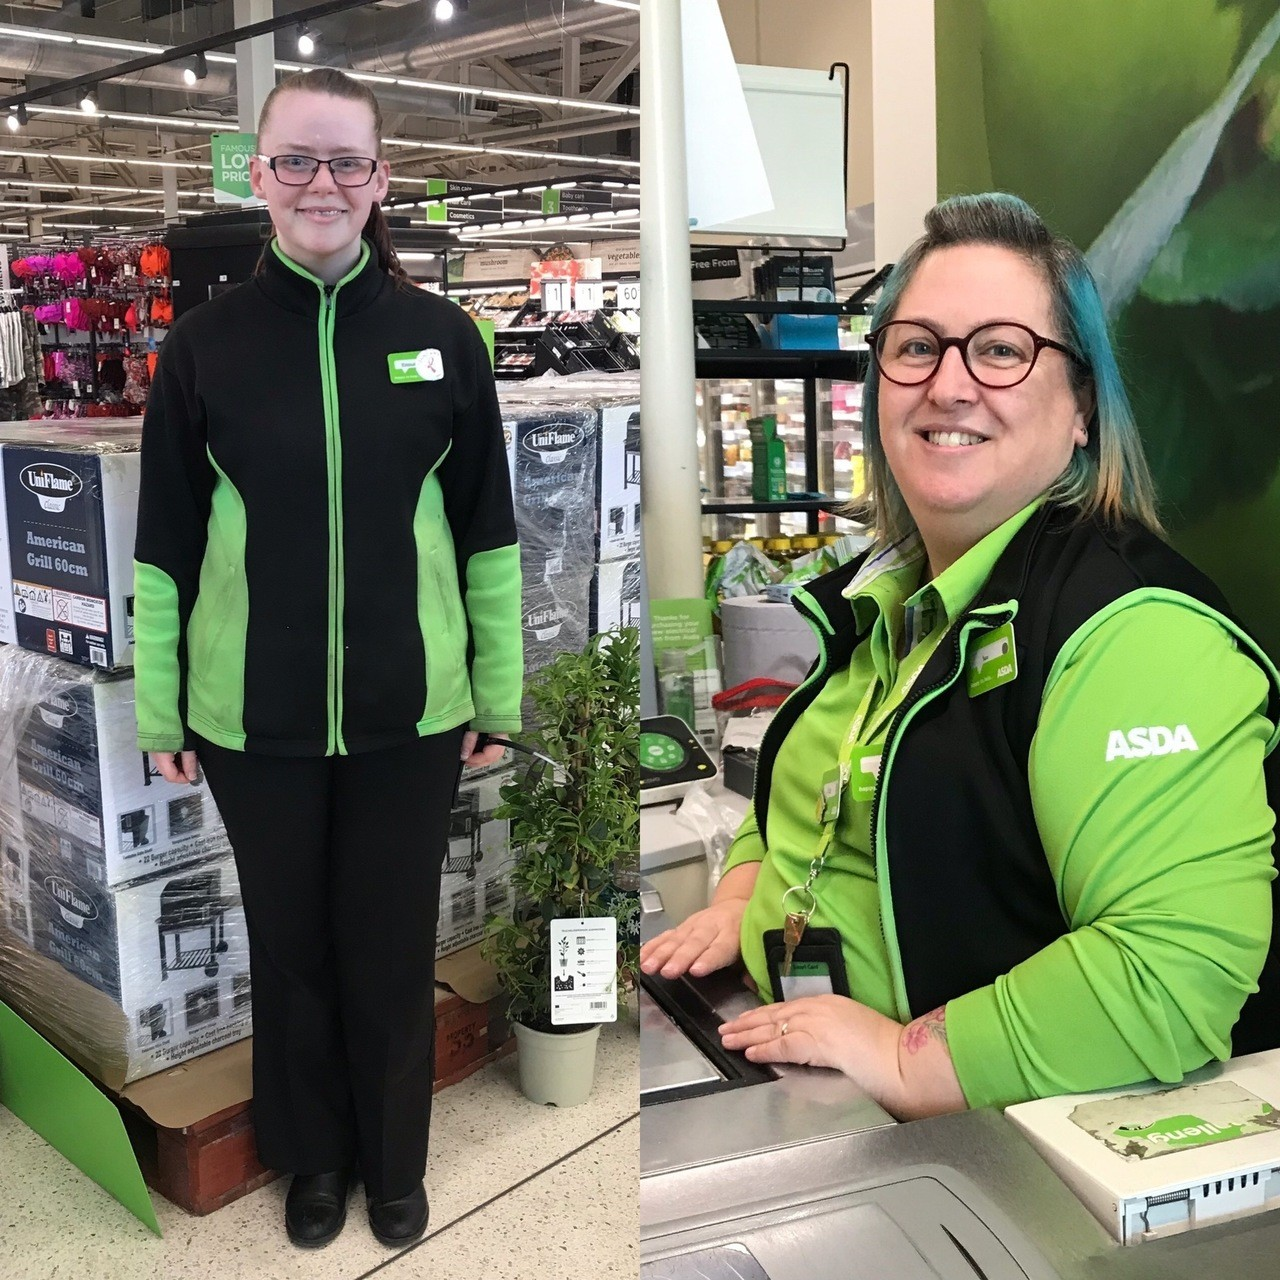 Emma and Sam go the extra mile in helping diabetic customer | Asda Frome